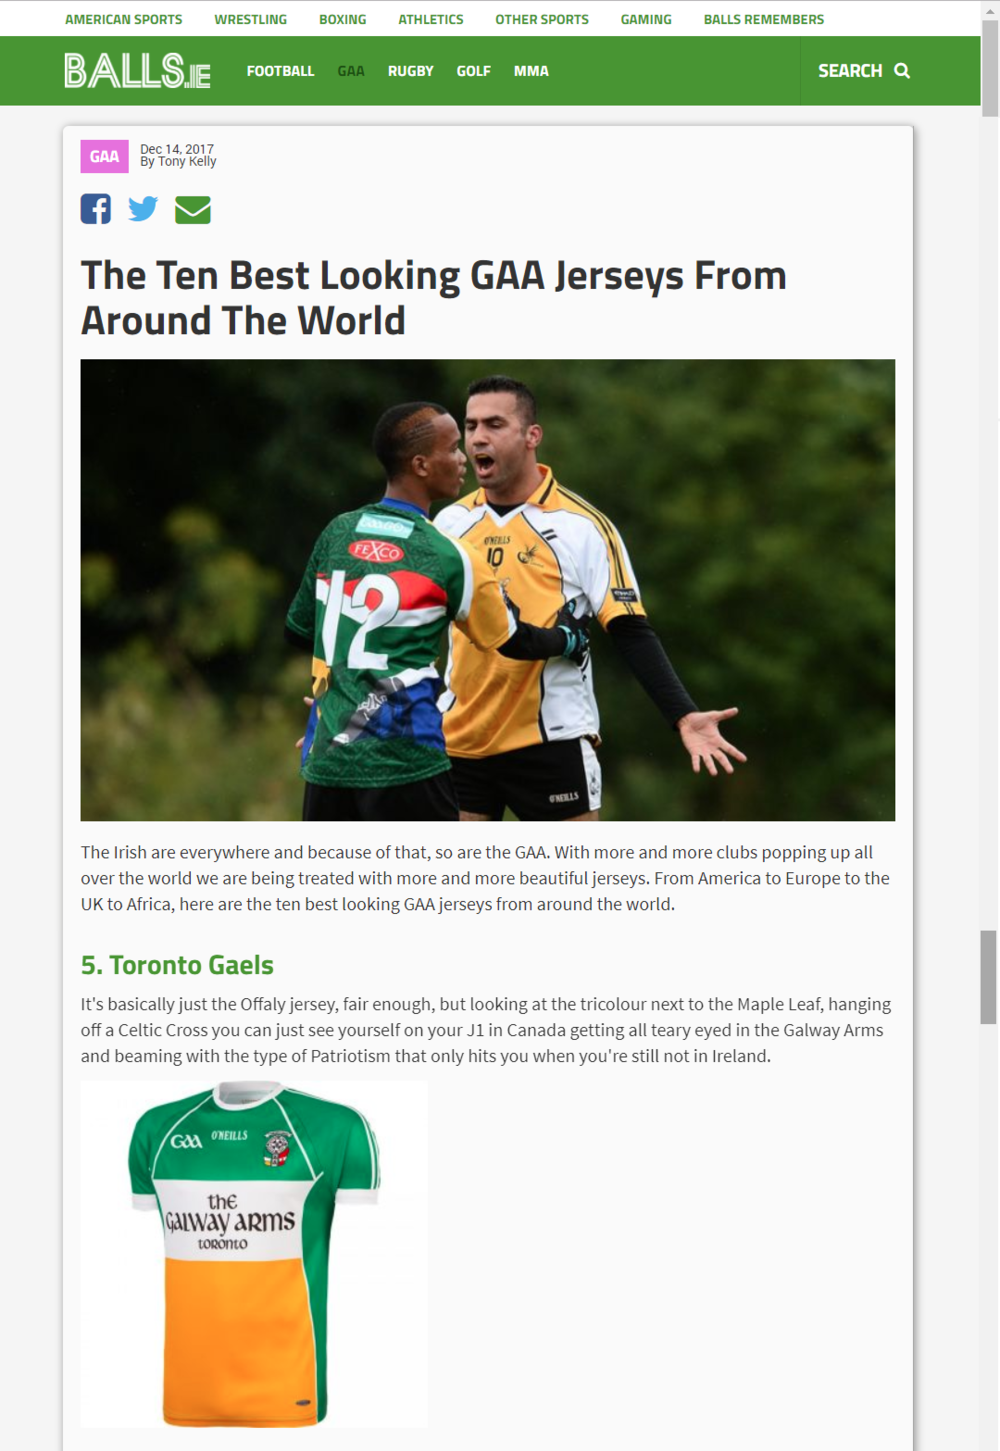 Balls.ie Toronto Gaels Jersey.png